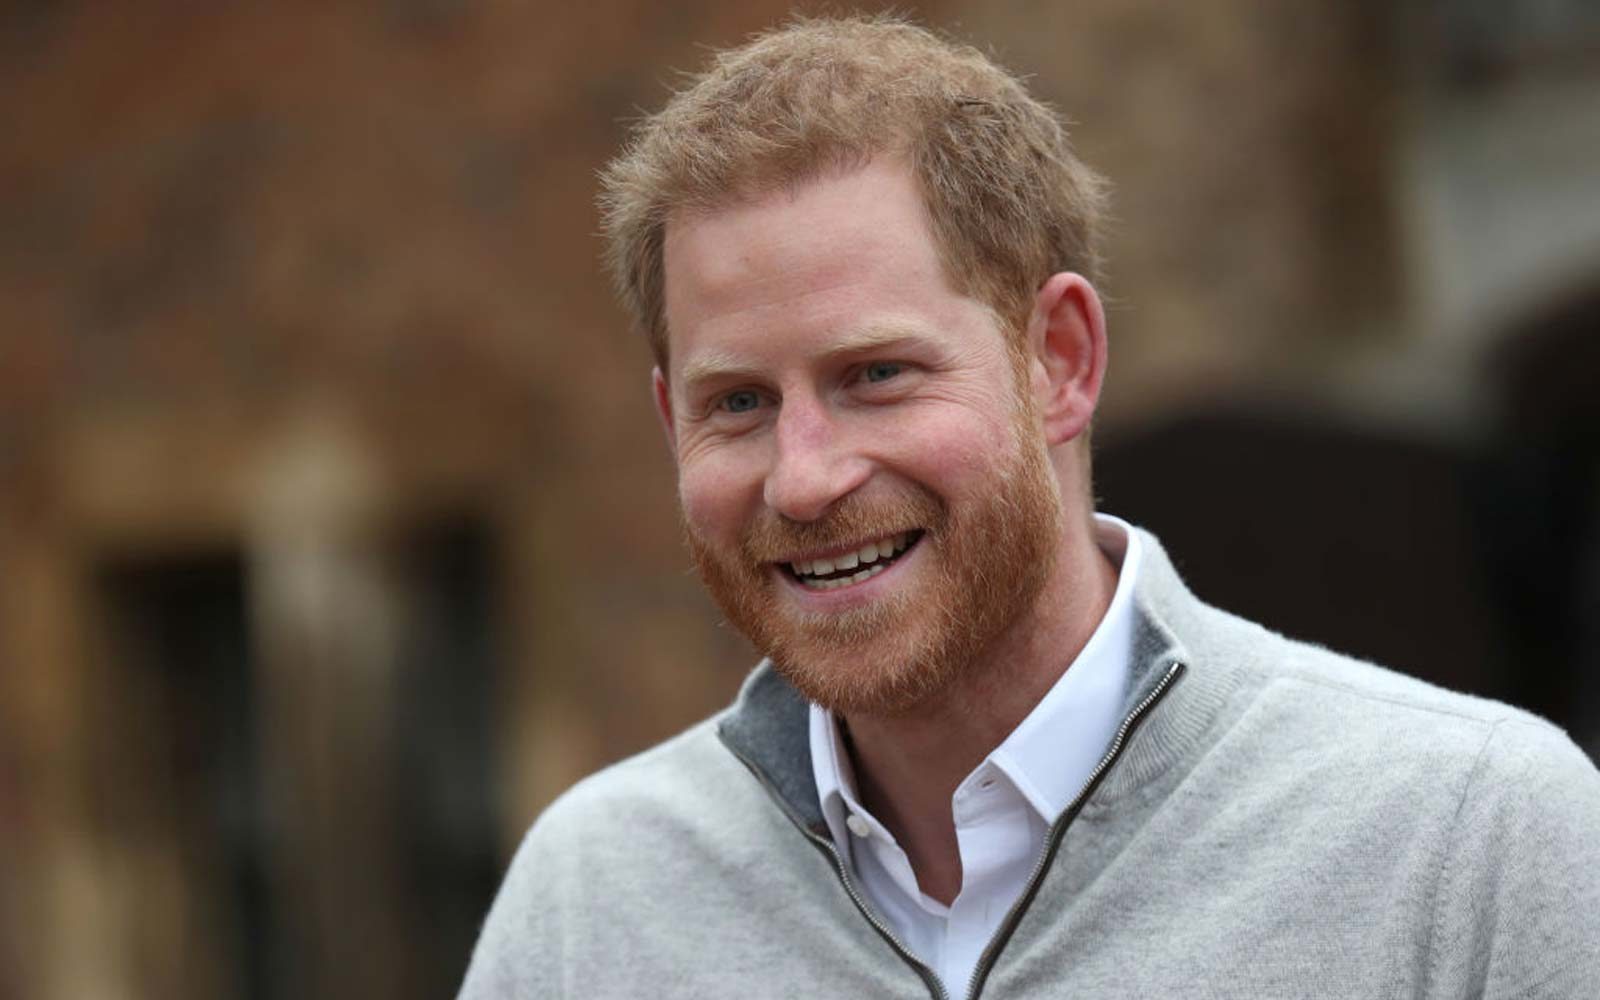 Prince Harry Says He's 'Over the Moon' After Meghan Markle Gives Birth to Baby Boy (Video)